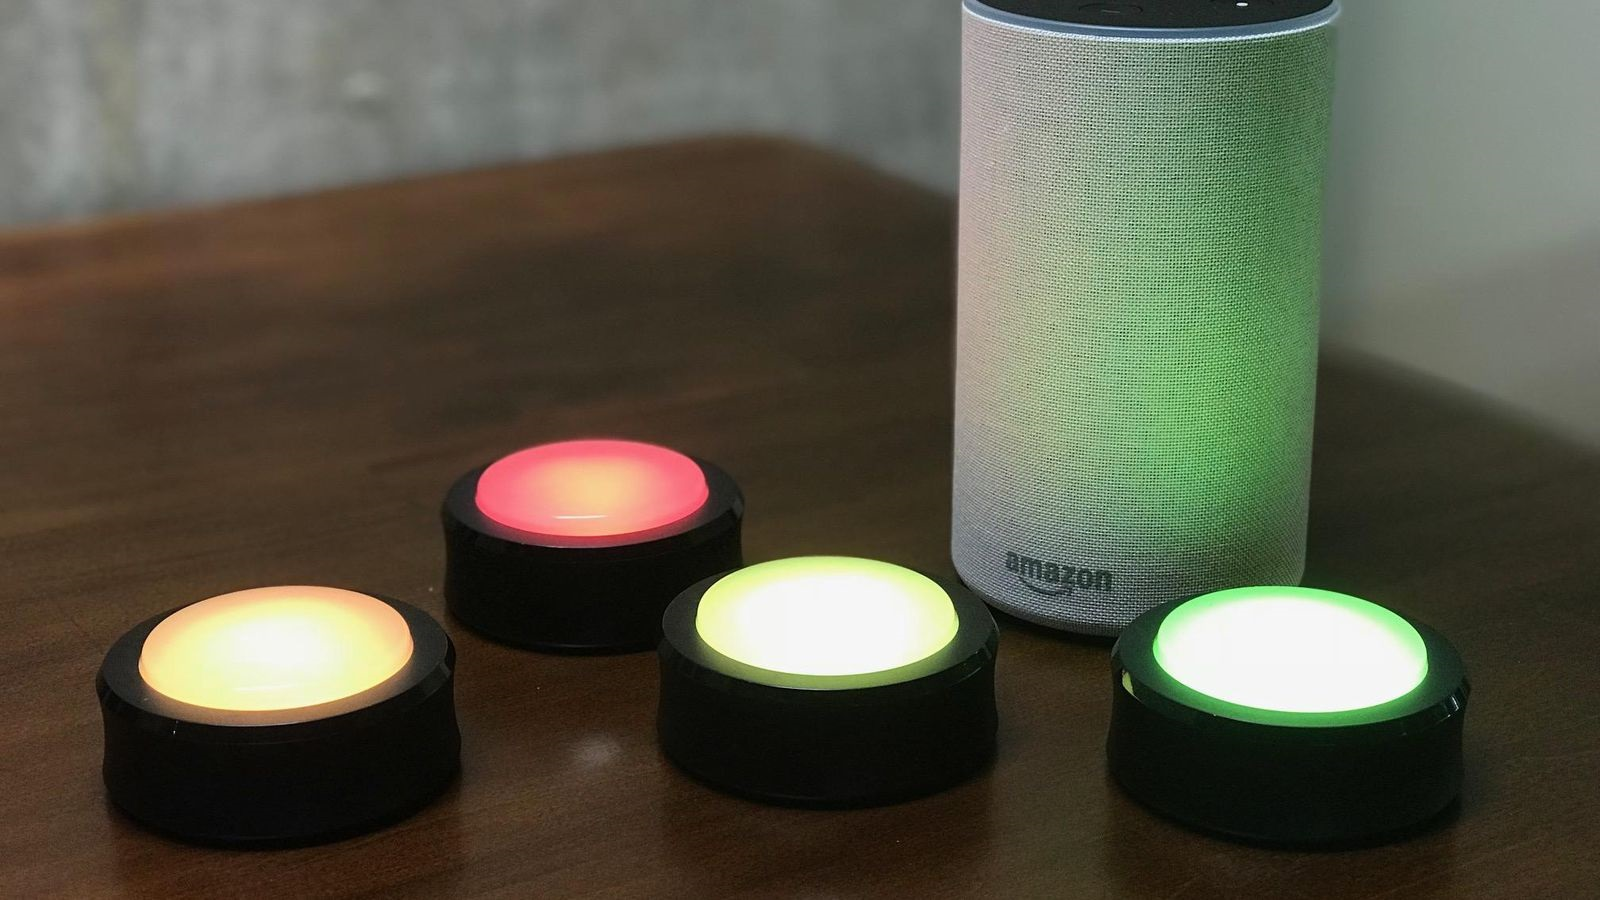 amazon echo con luces